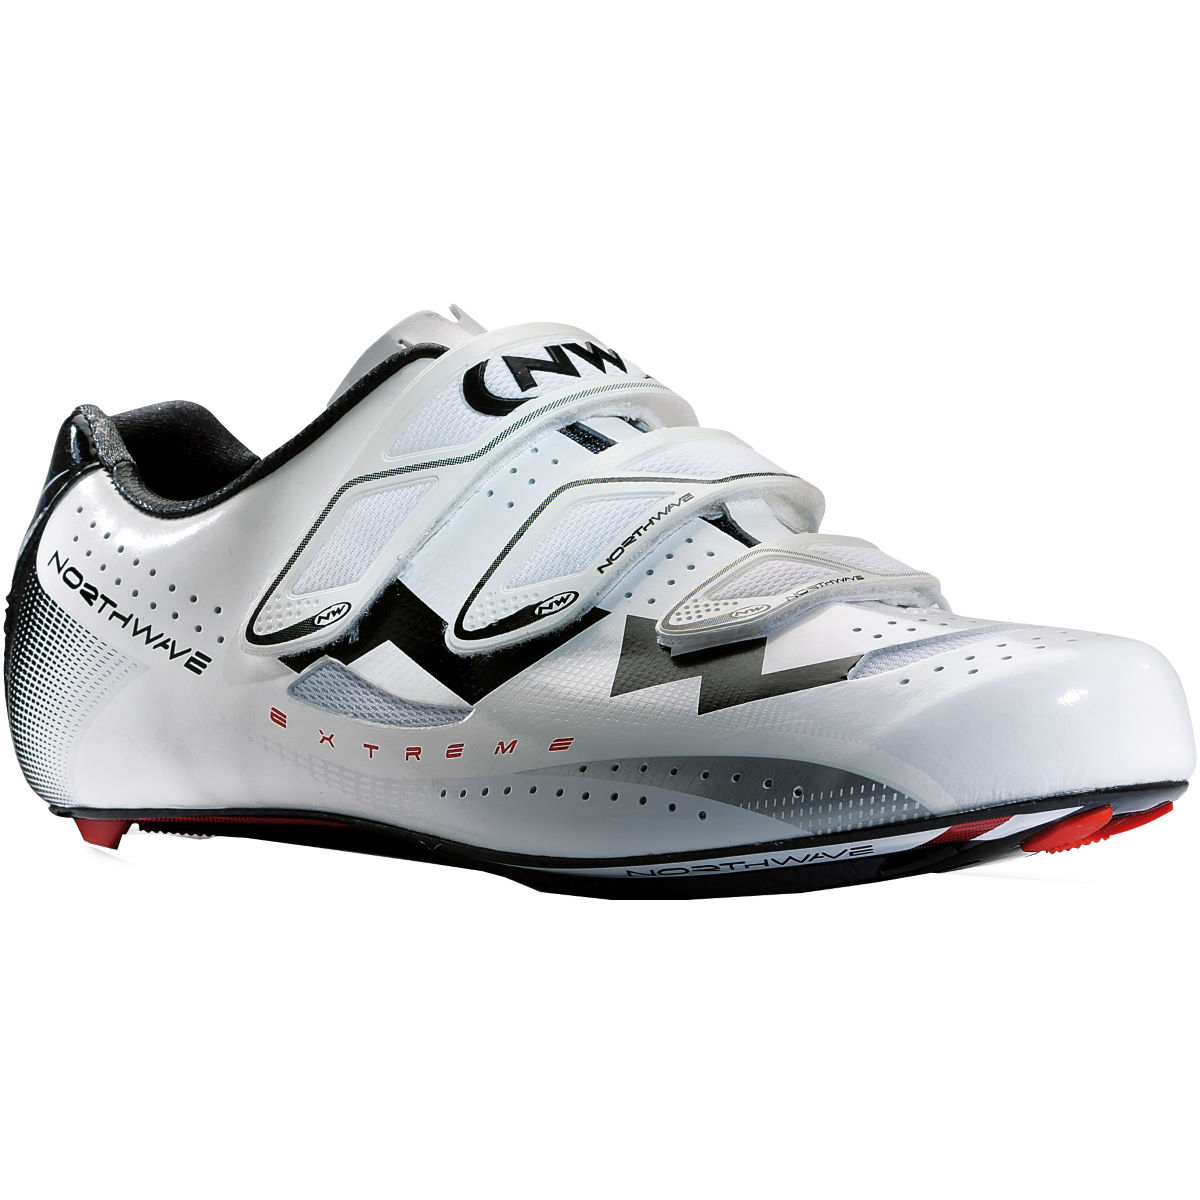 Northwave Extreme Tech 3S Road Shoes   Road Shoes